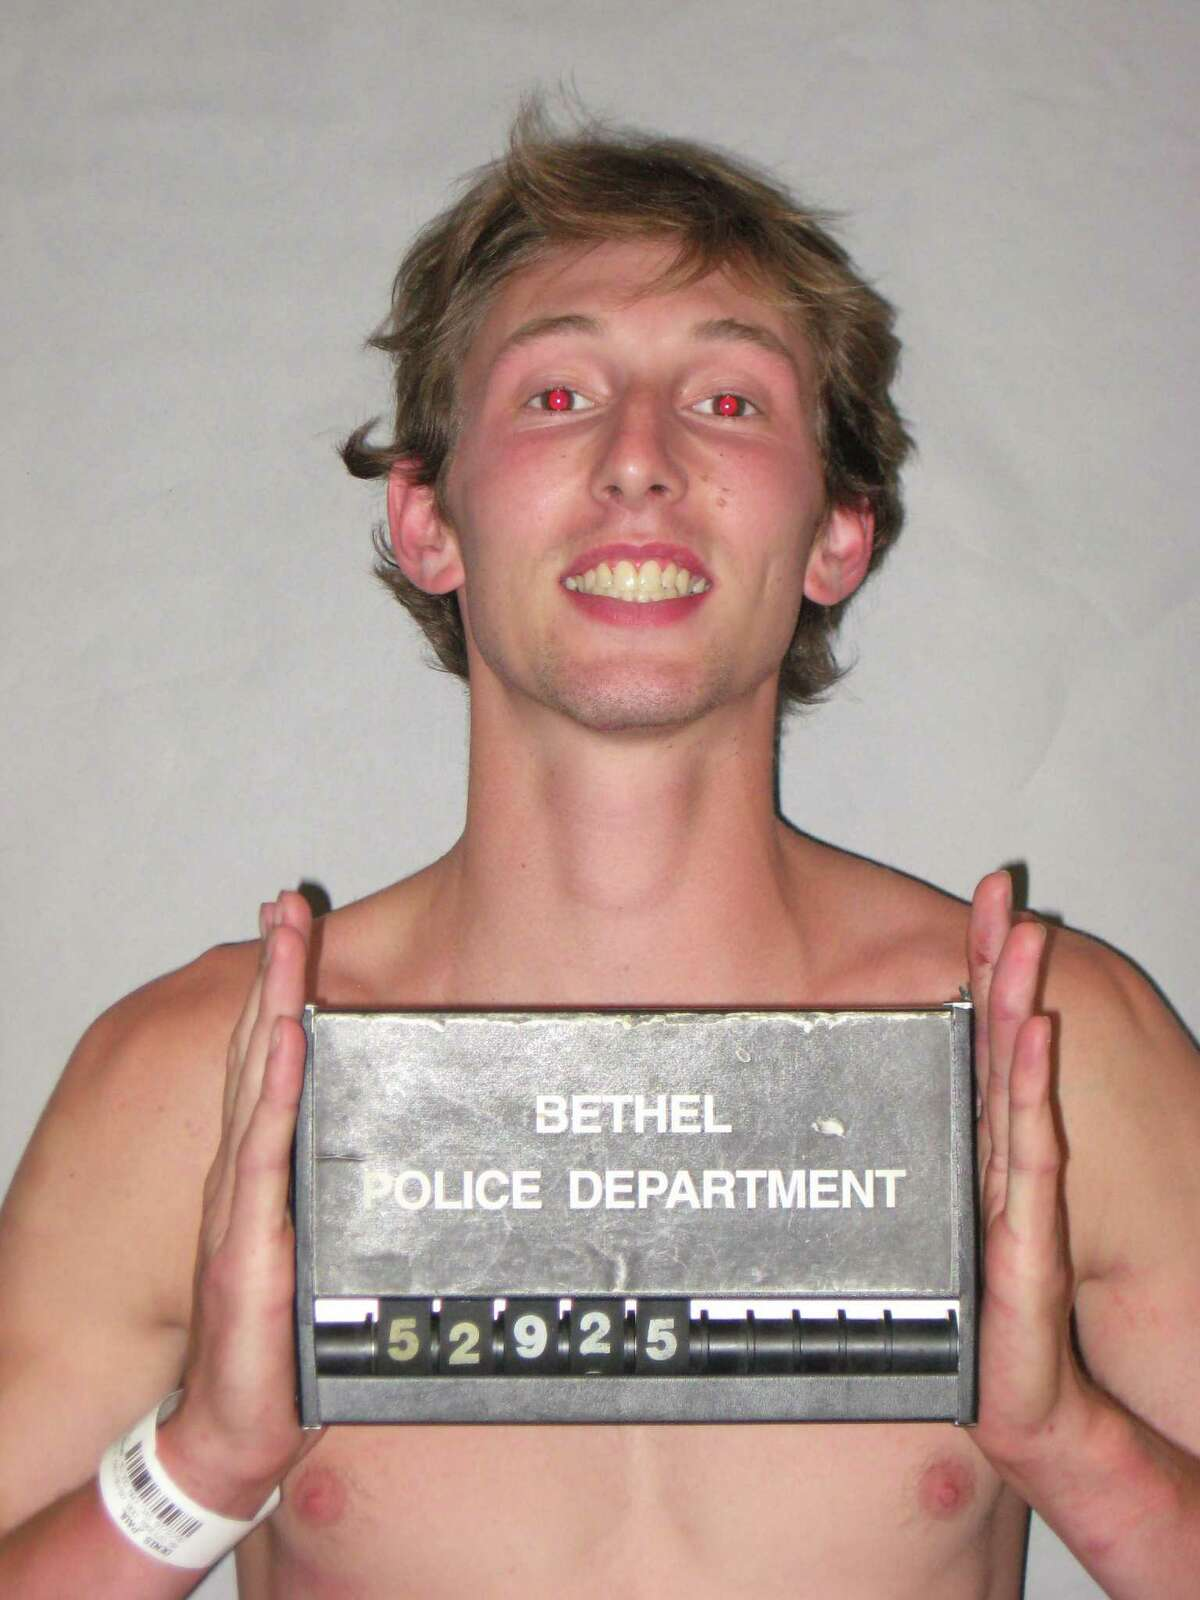 Paul Denis, 23, of Fire Hill Road in Ridgefield, failed to stop and led police on a low speed chase through the downtown area on Tuesday, June 21, 2016. During the chase, police said Denis was hanging out of his window and yelling incoherently. Denis was charged with driving while under the influence, evading responsibility, failure to stop and a stop sign, operating under suspension, interfering with an officer and being in possession of less than a half ounce of marijuana. He was released into his mother's custody after posting a $10,000 bond.